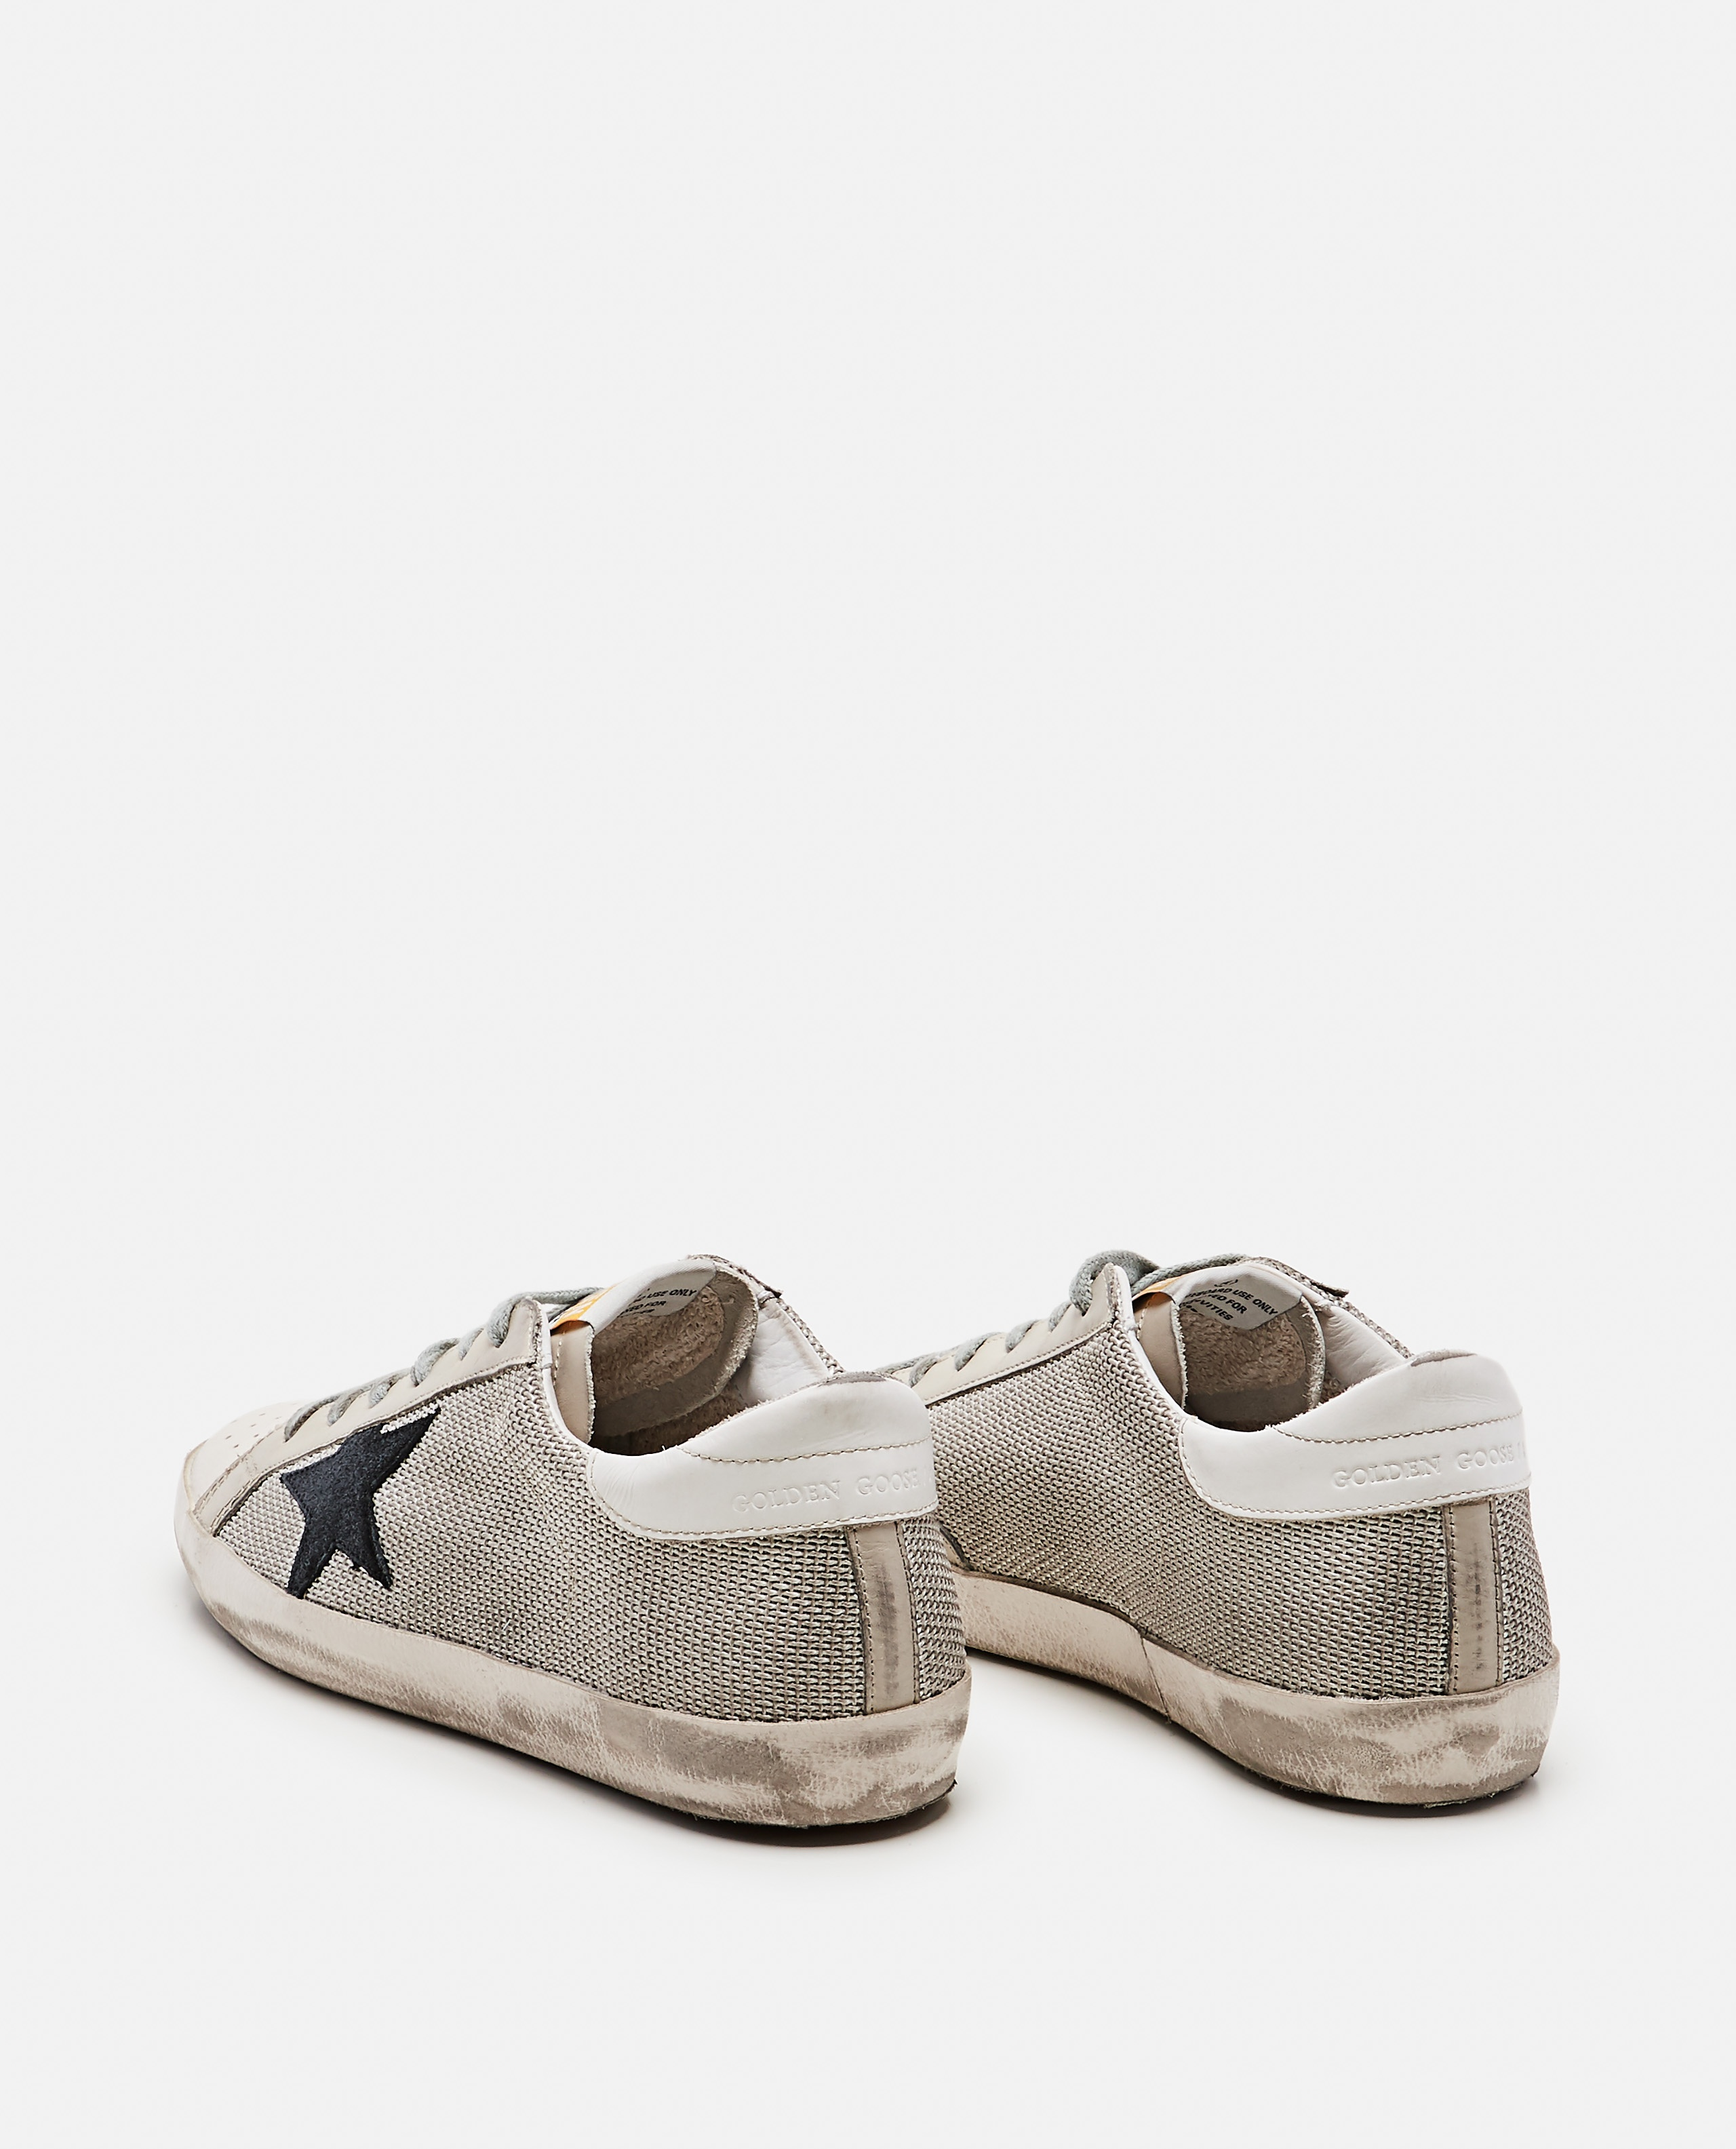 Sneakers 'Superstar' Donna Golden Goose 000256700037928 3